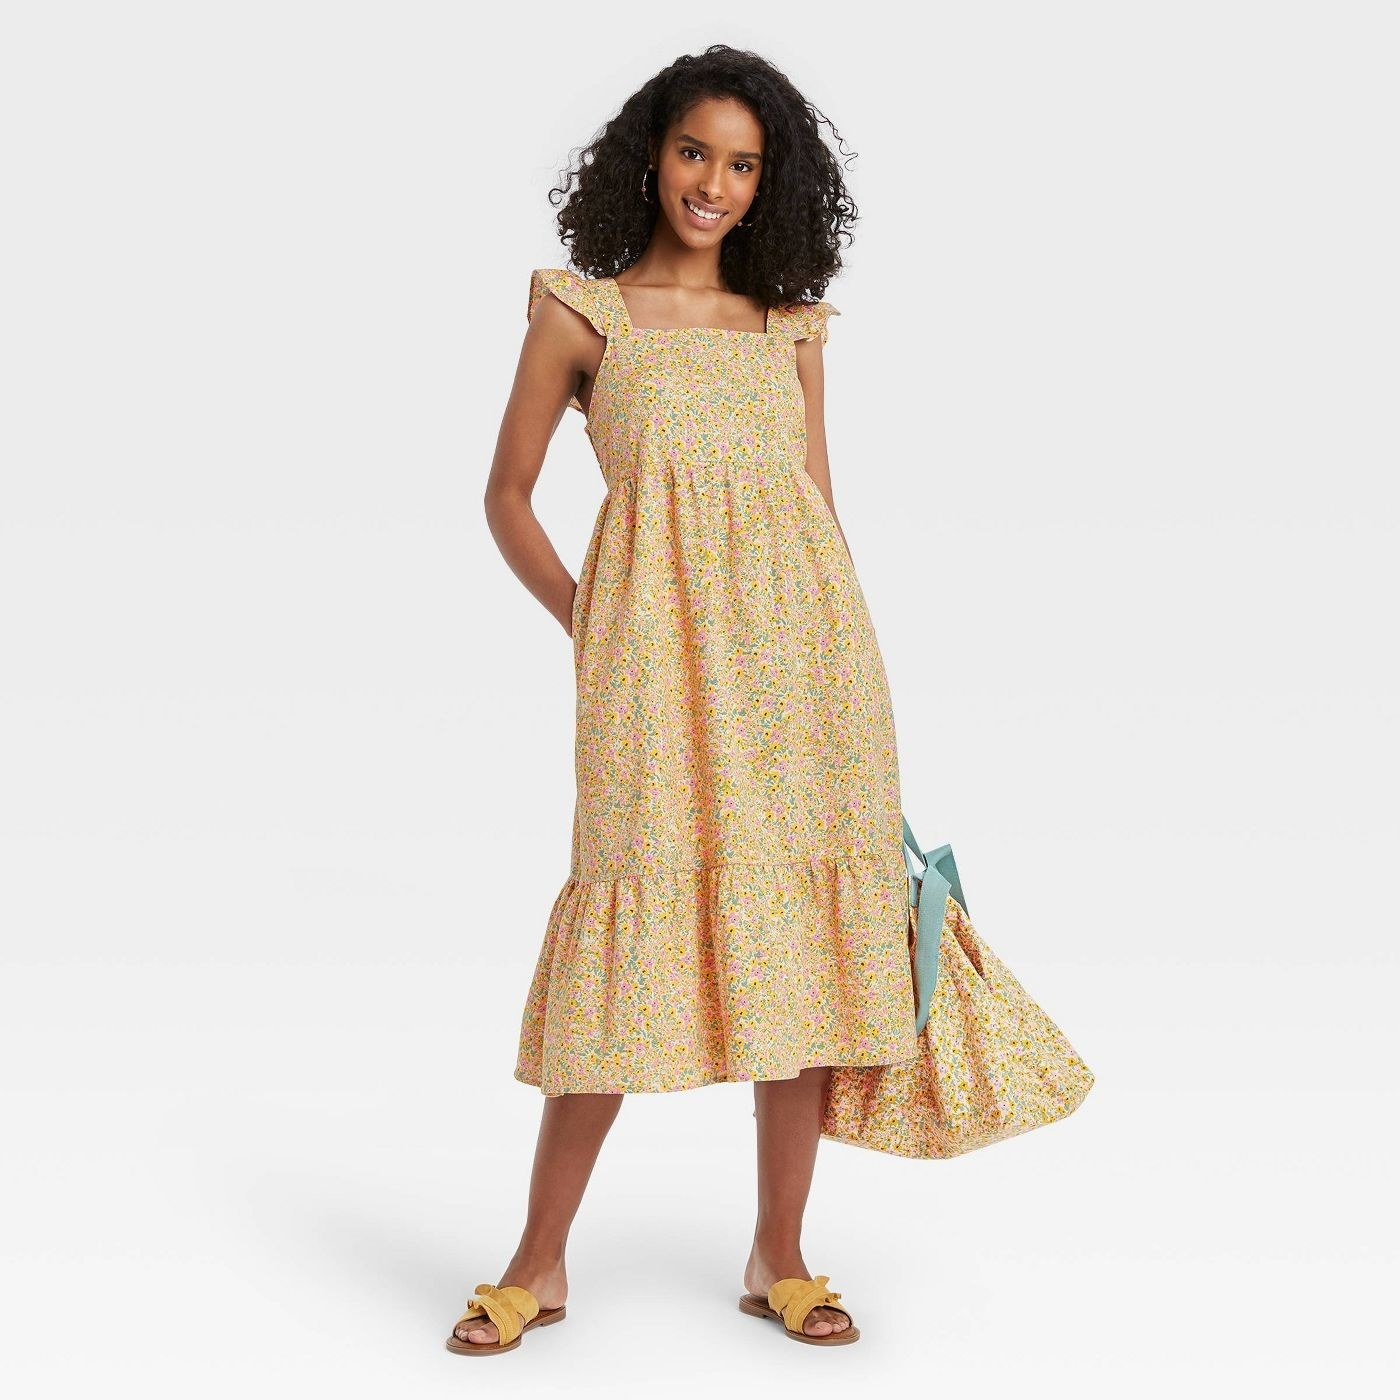 Model wearing yellow floral dress with hemmed skirt